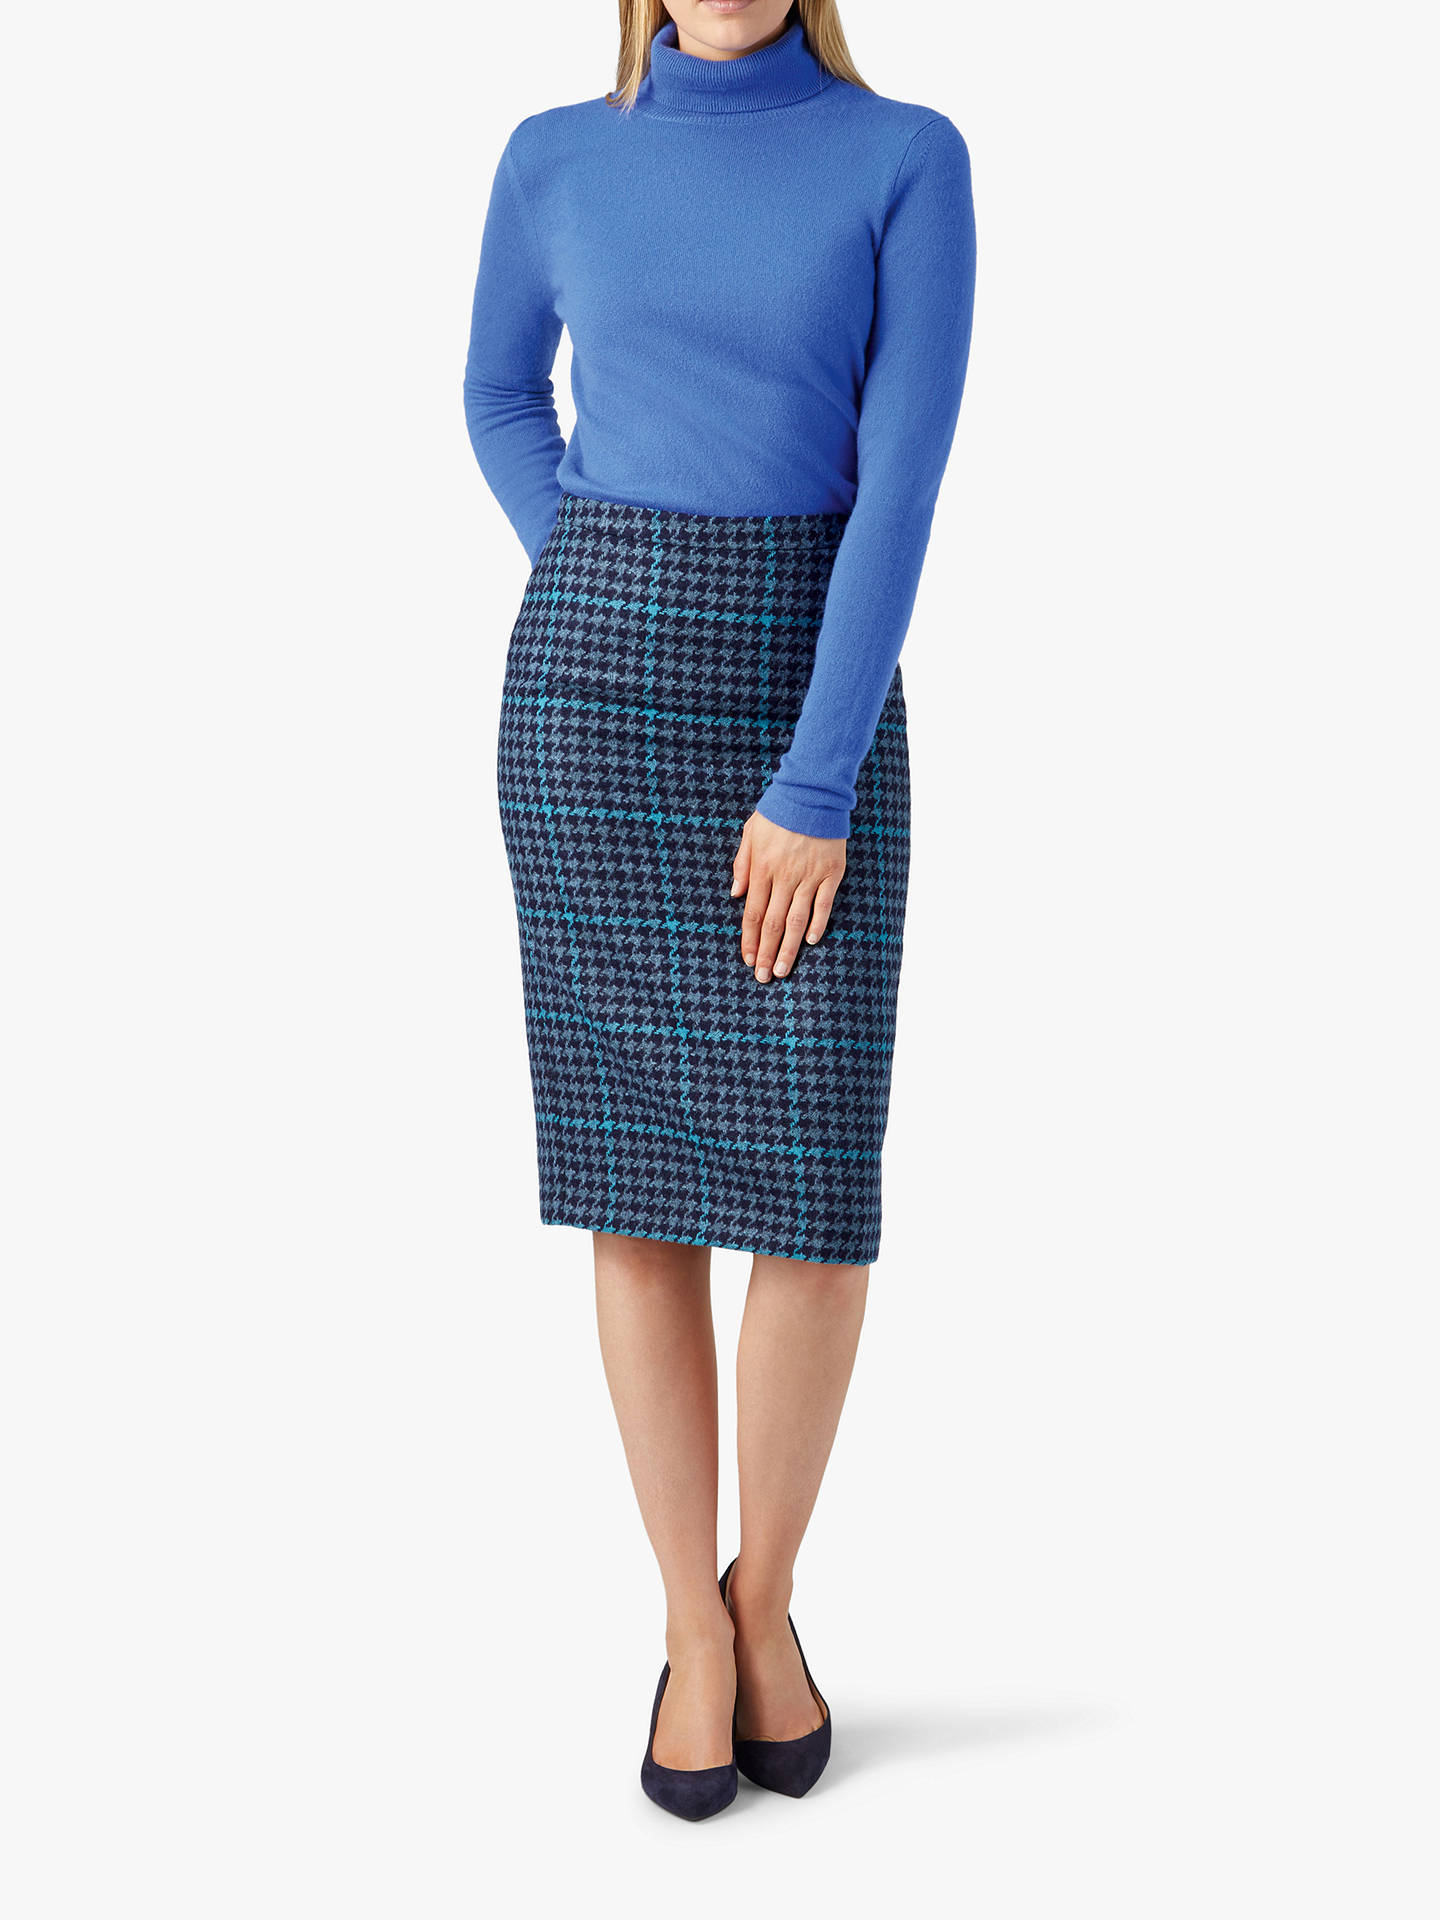 BuyPure Collection Wool Pencil Skirt, Multi Blue, 12 Online at johnlewis.com